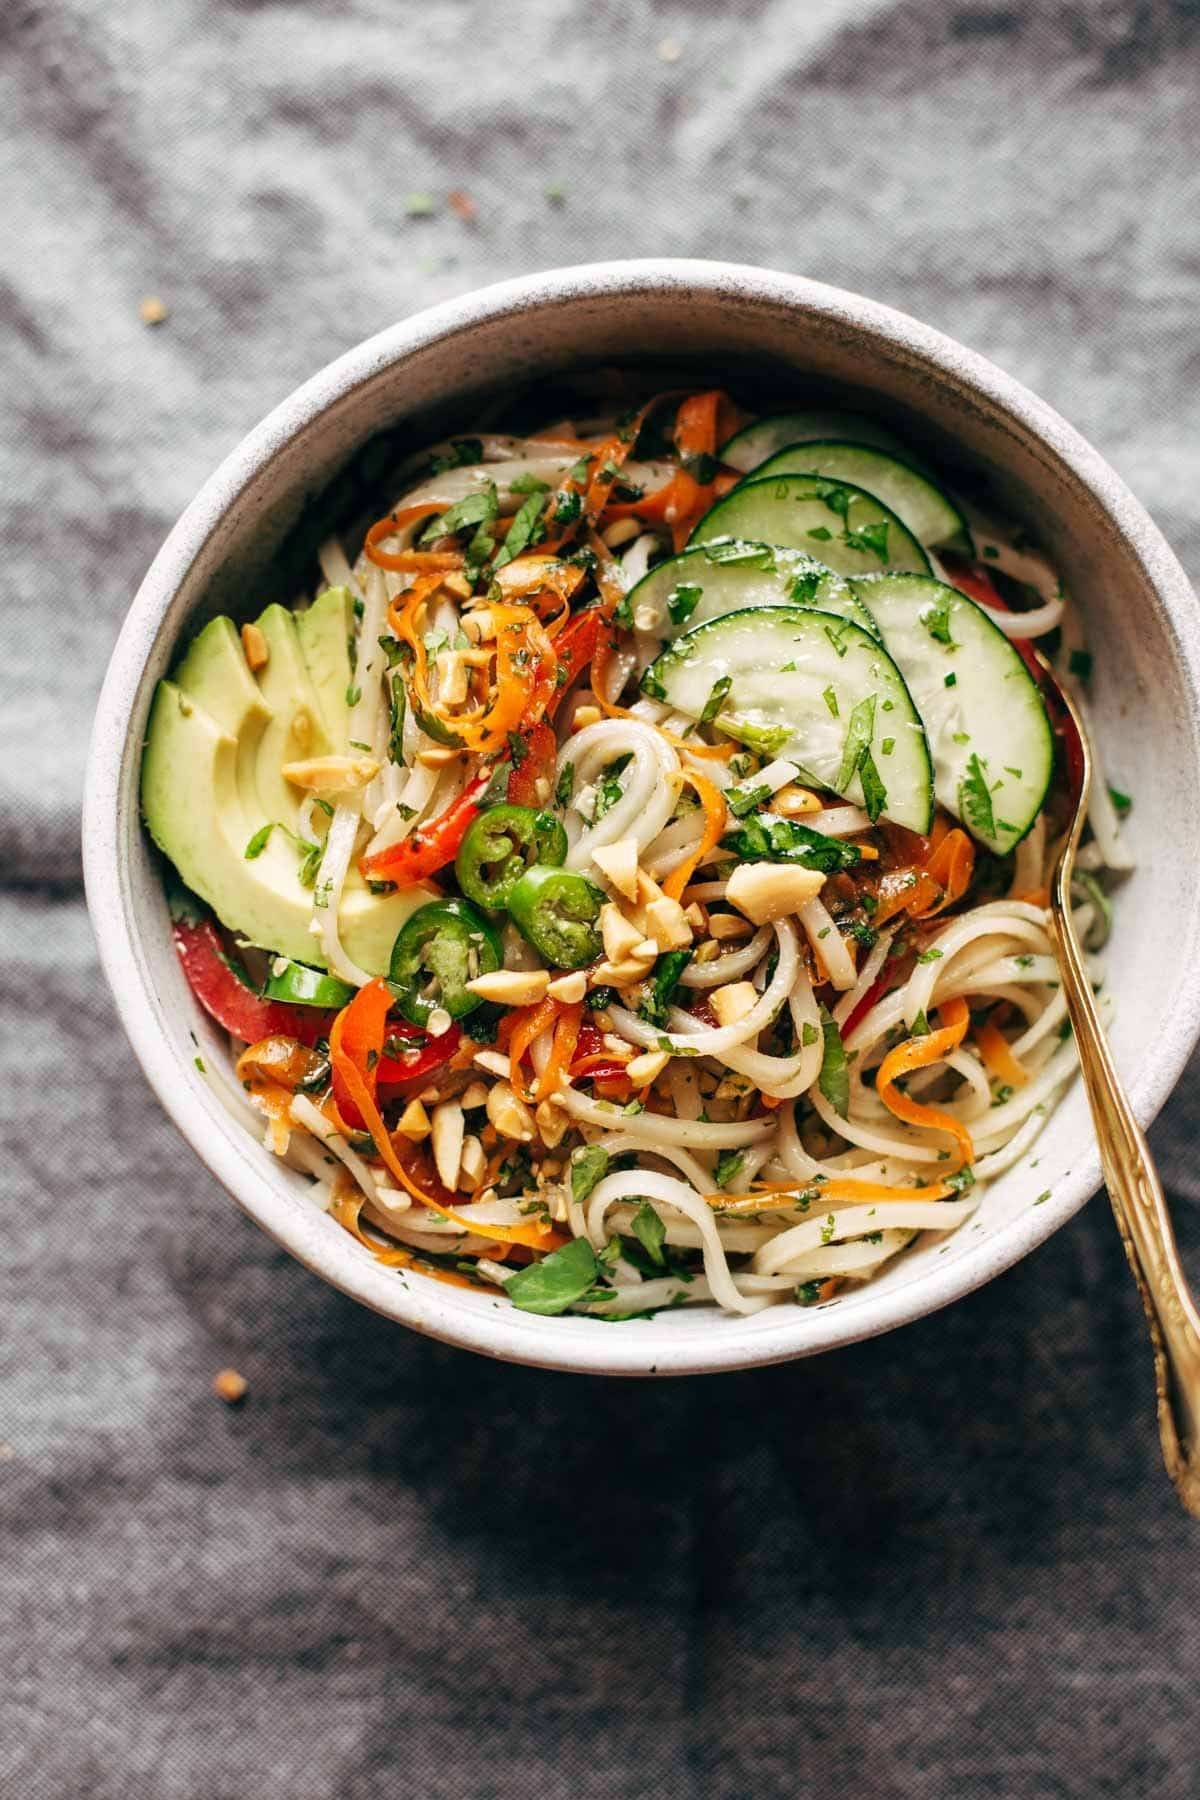 15 Super Bowl Recipes To Feel More Satisfied In Life - Spring Roll Bowls with Sweet Garlic Lime Sauce